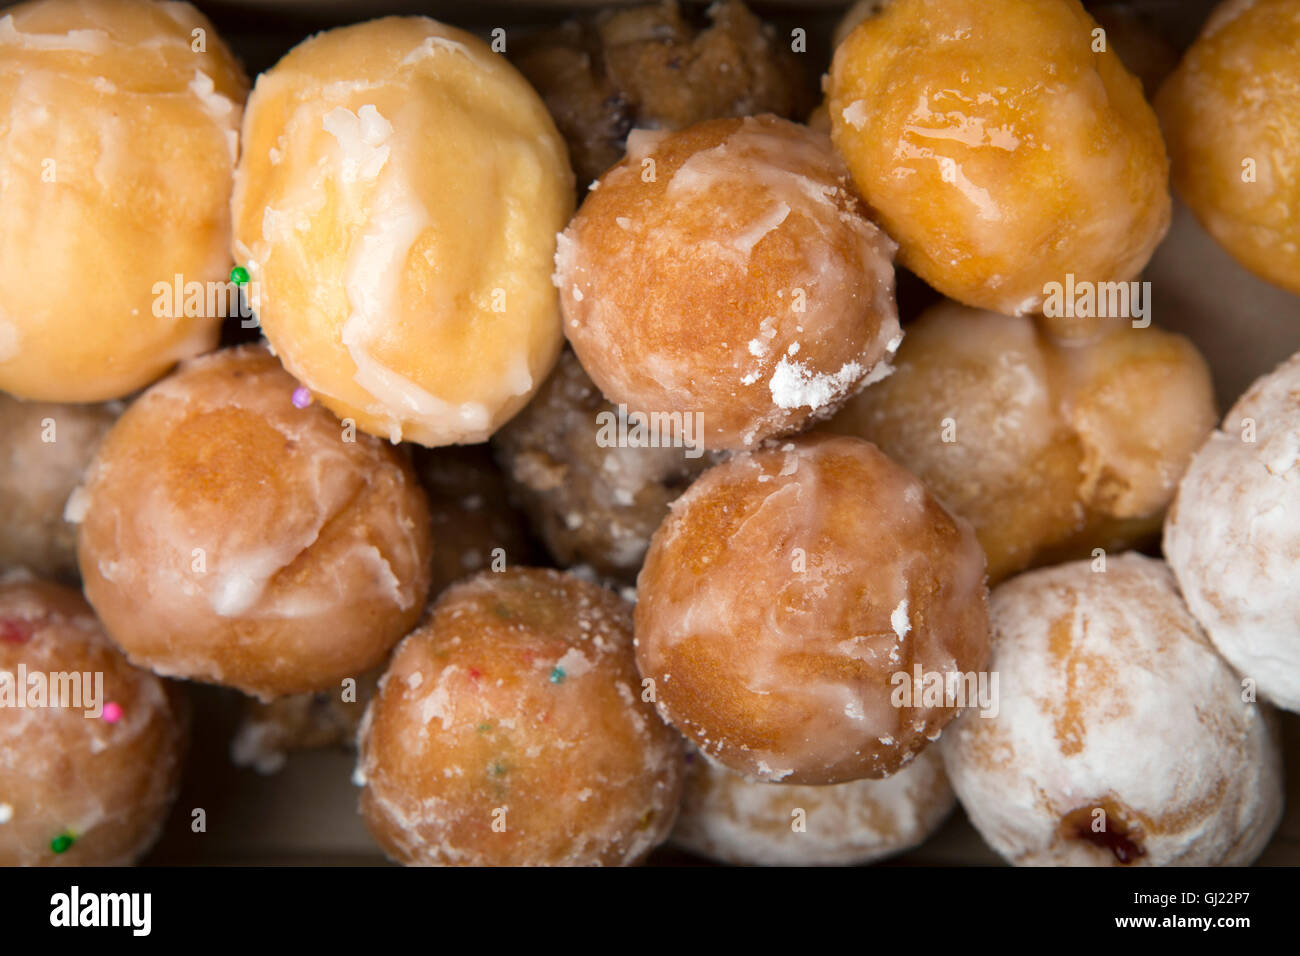 A box of Timbits served in Canada. The glazed, bite-sized pieces of doughnut are served at Tim Horton's stores. Stock Photo